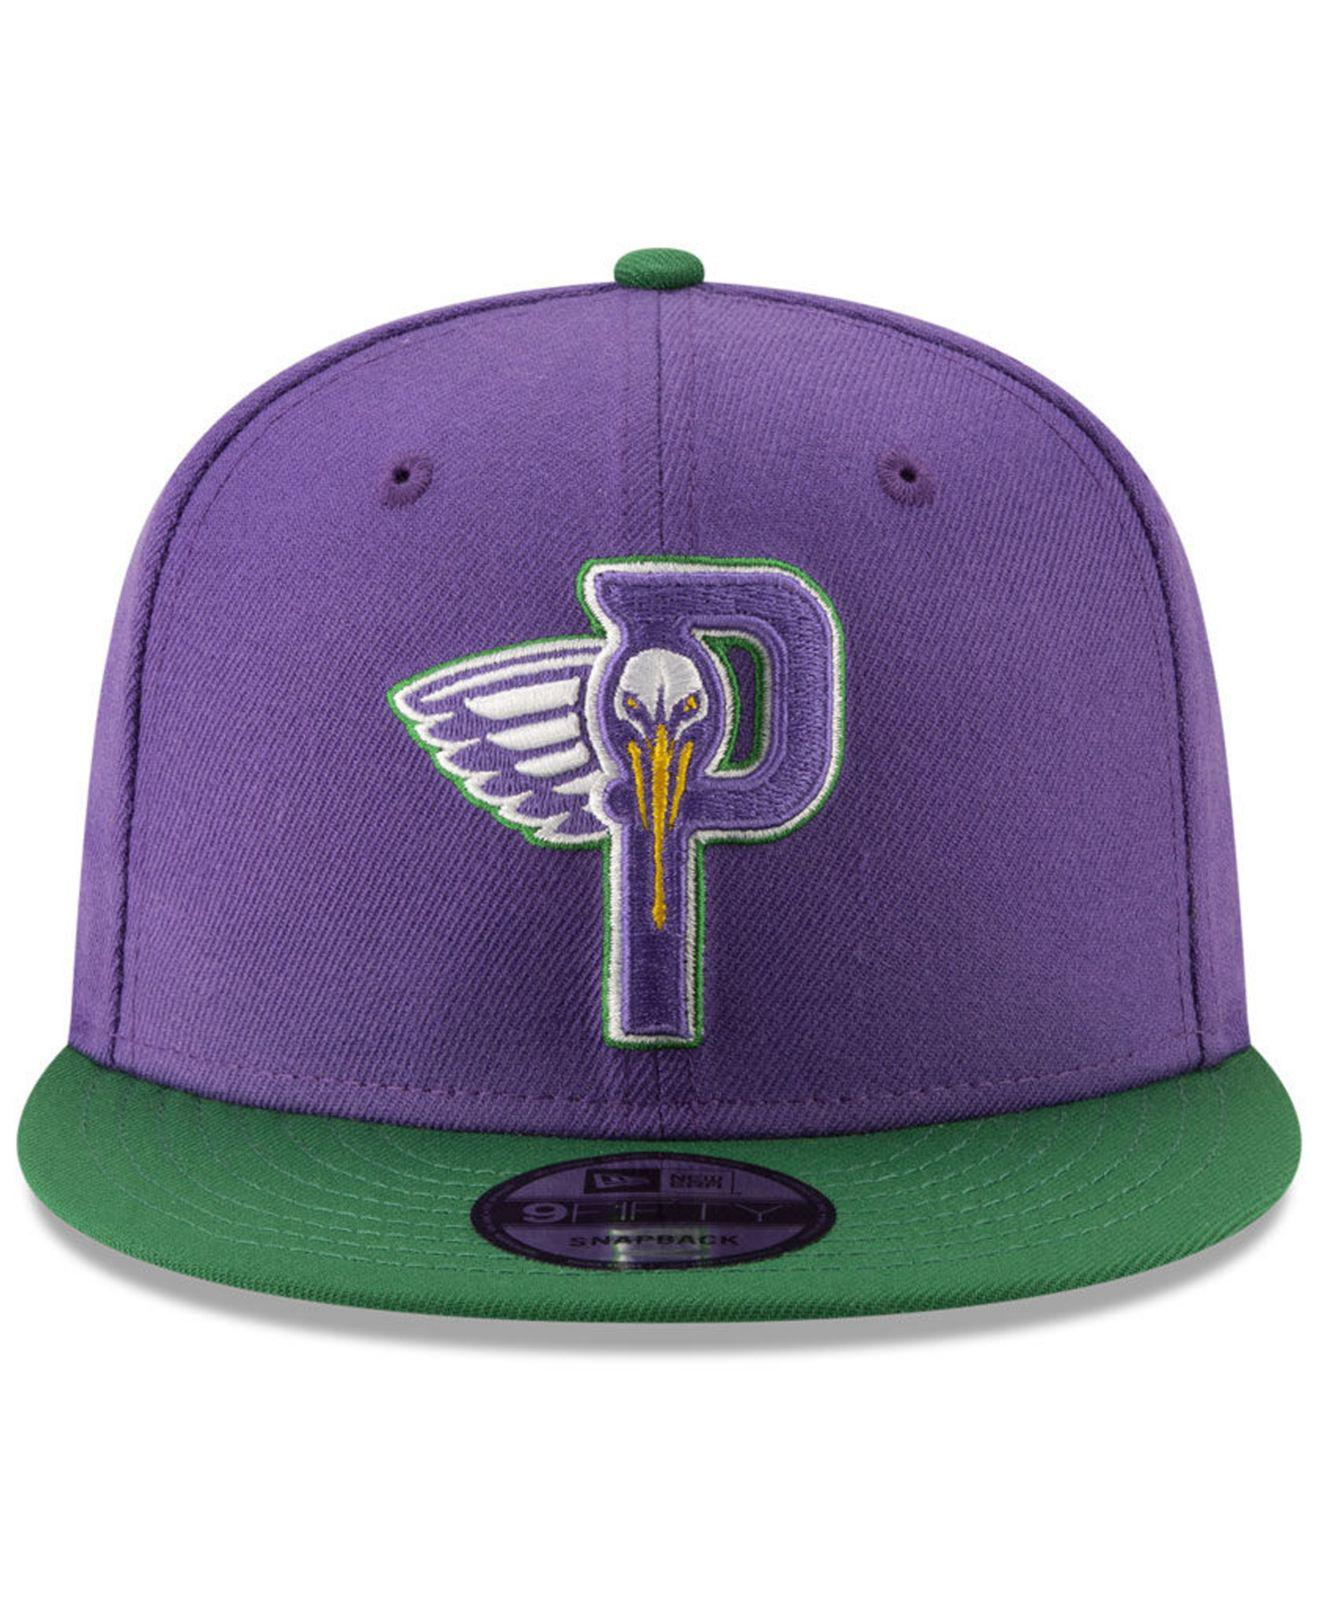 outlet store a9af8 9ab90 ... discount code for lyst ktz new orleans pelicans light city combo 9fifty  snapback cap in purple